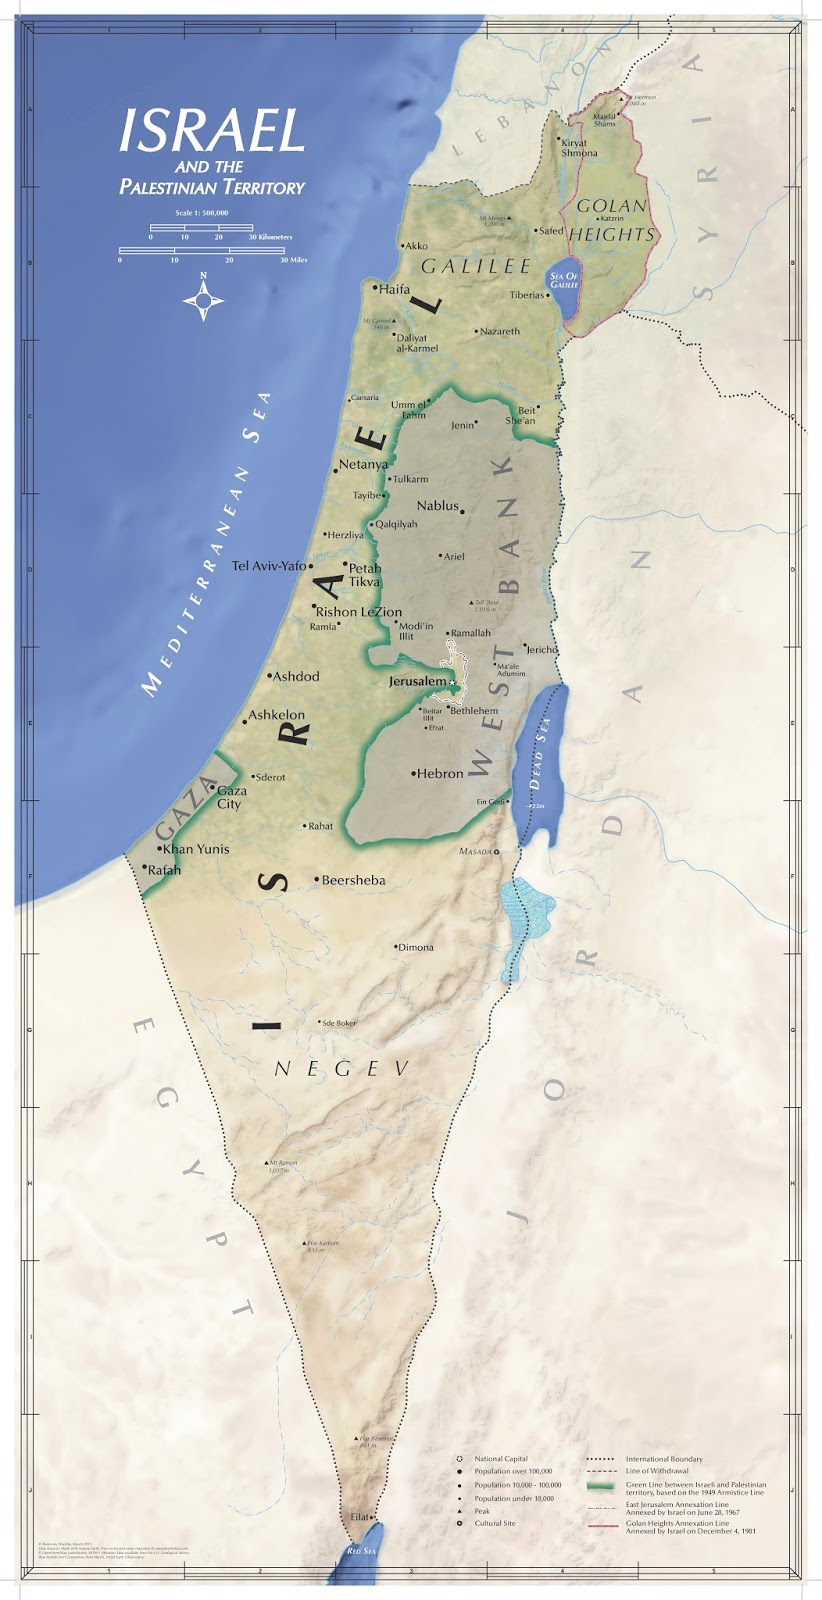 an introduction to the history and politics of israel Written by a leading historian of the middle east, israel is organized around six  major themes: land and people, history, society, politics, economics, and culture.